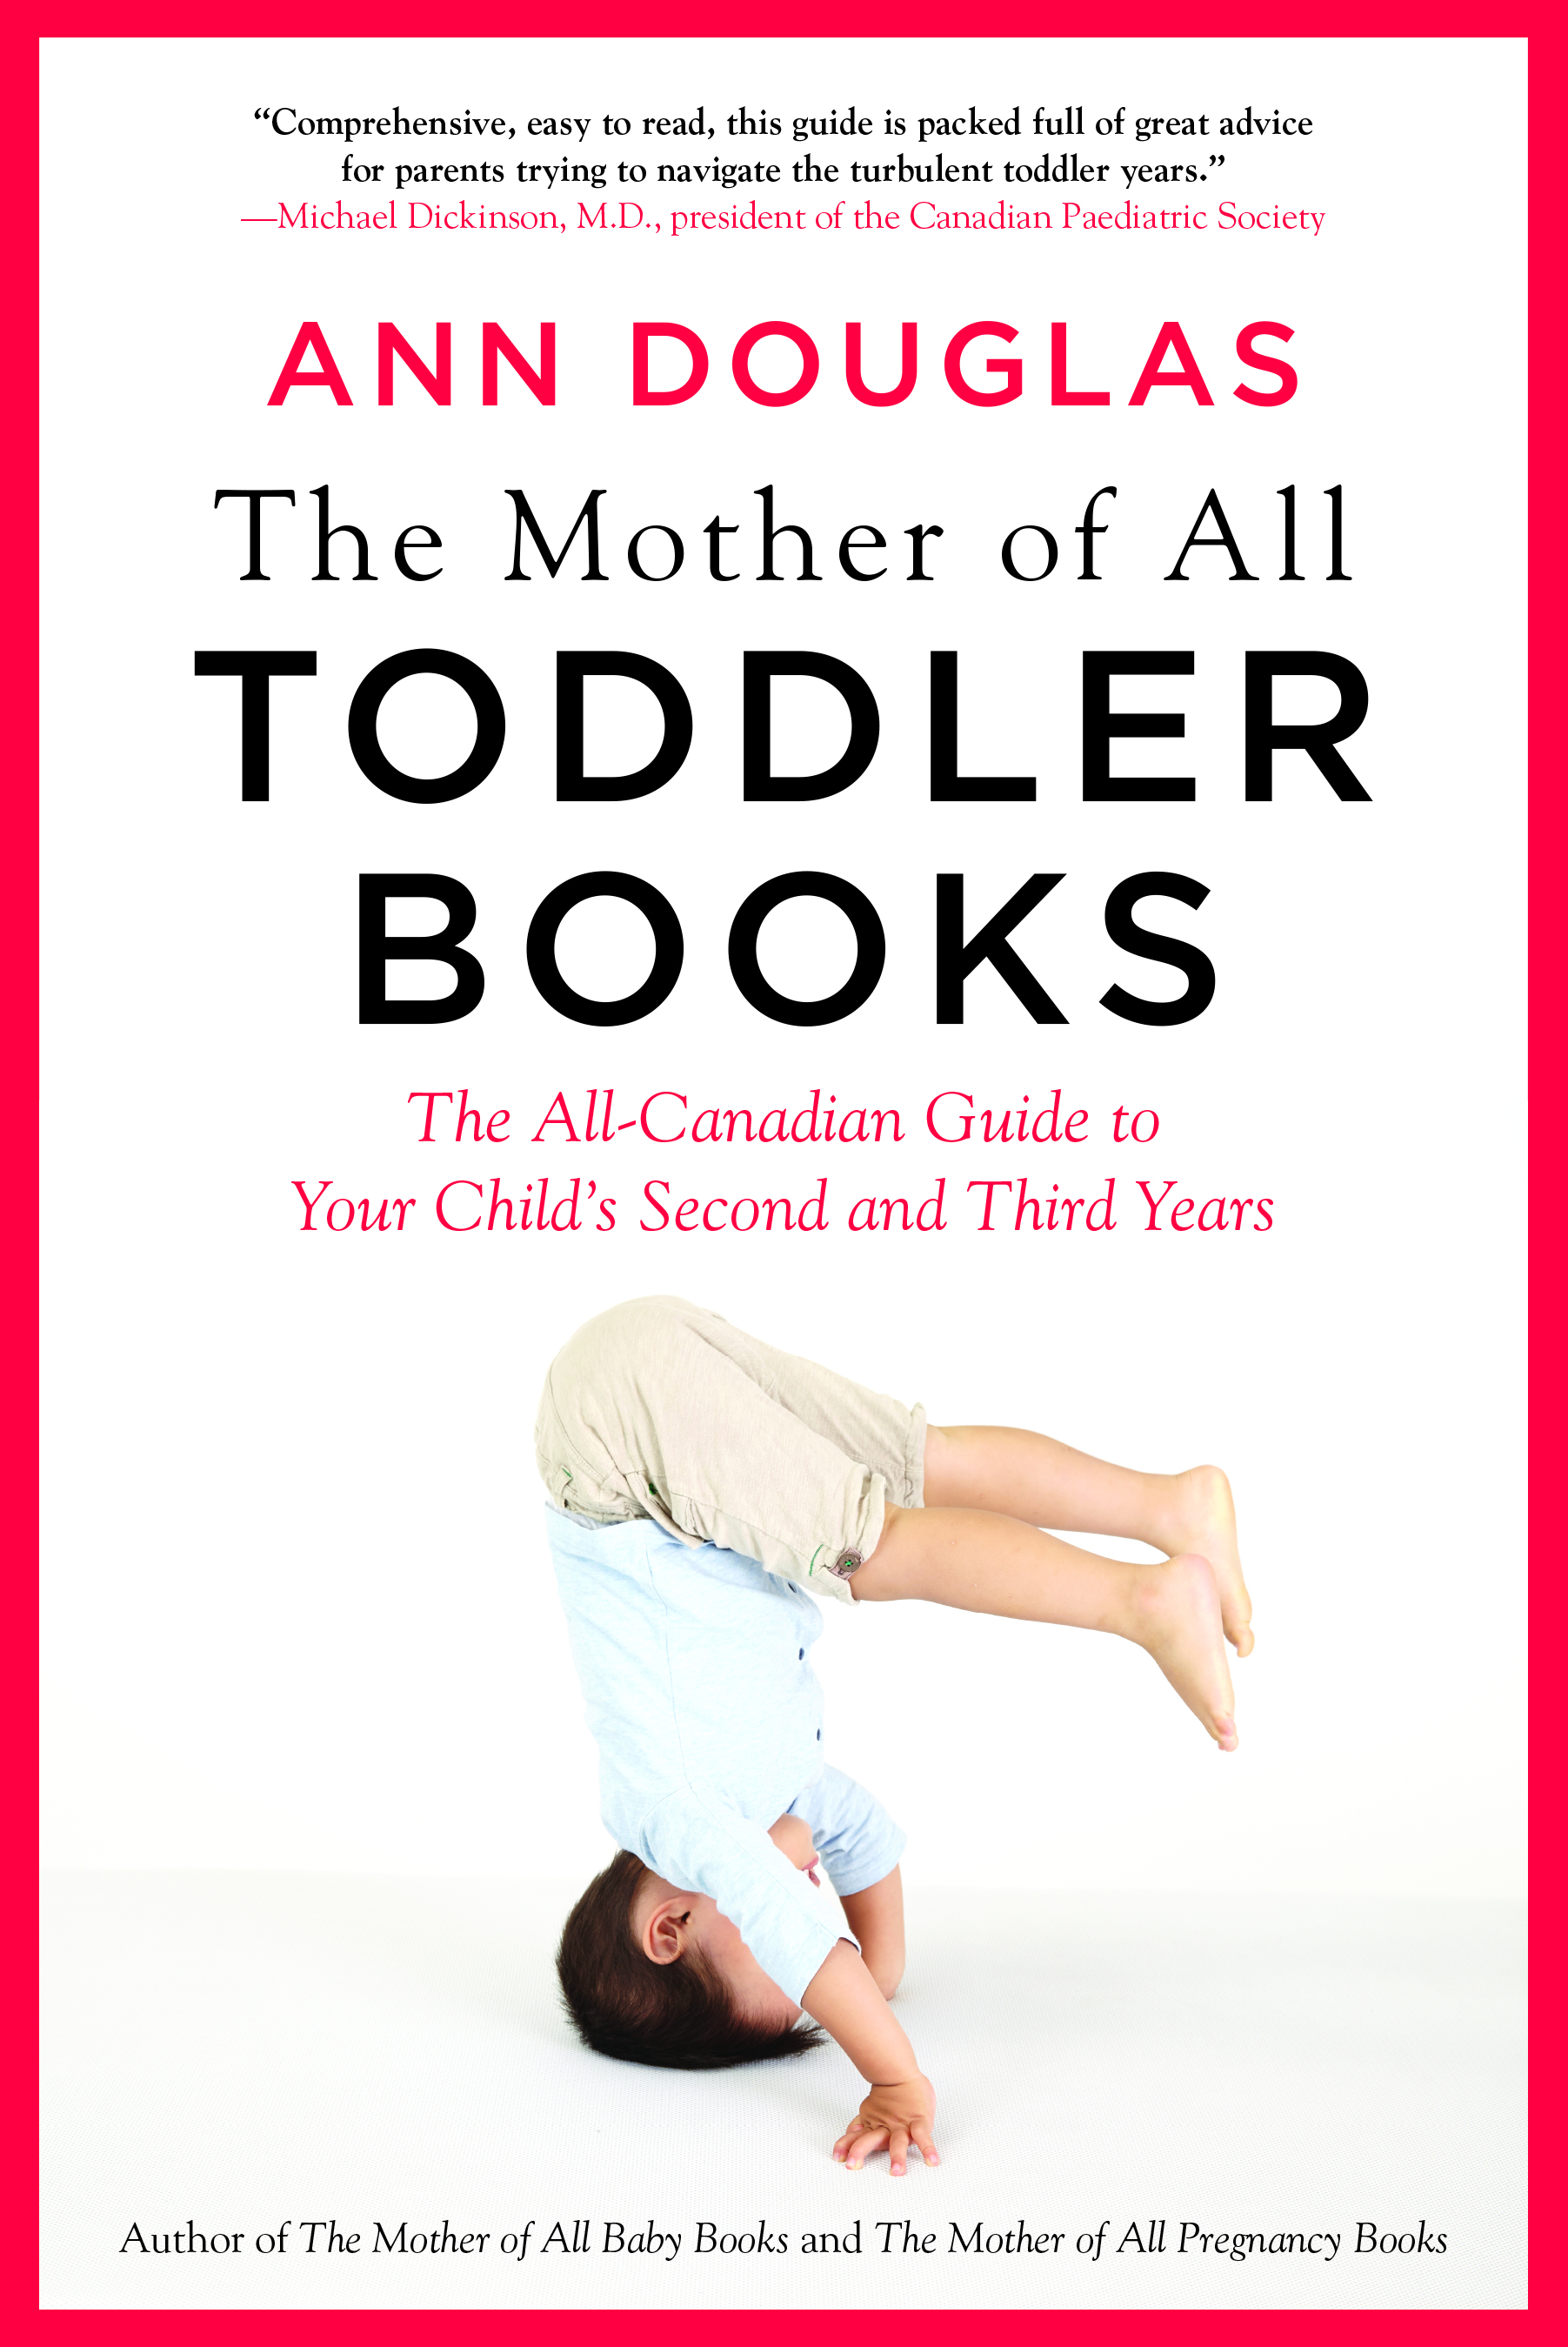 MotherOfAllToddlerBooks.jpg